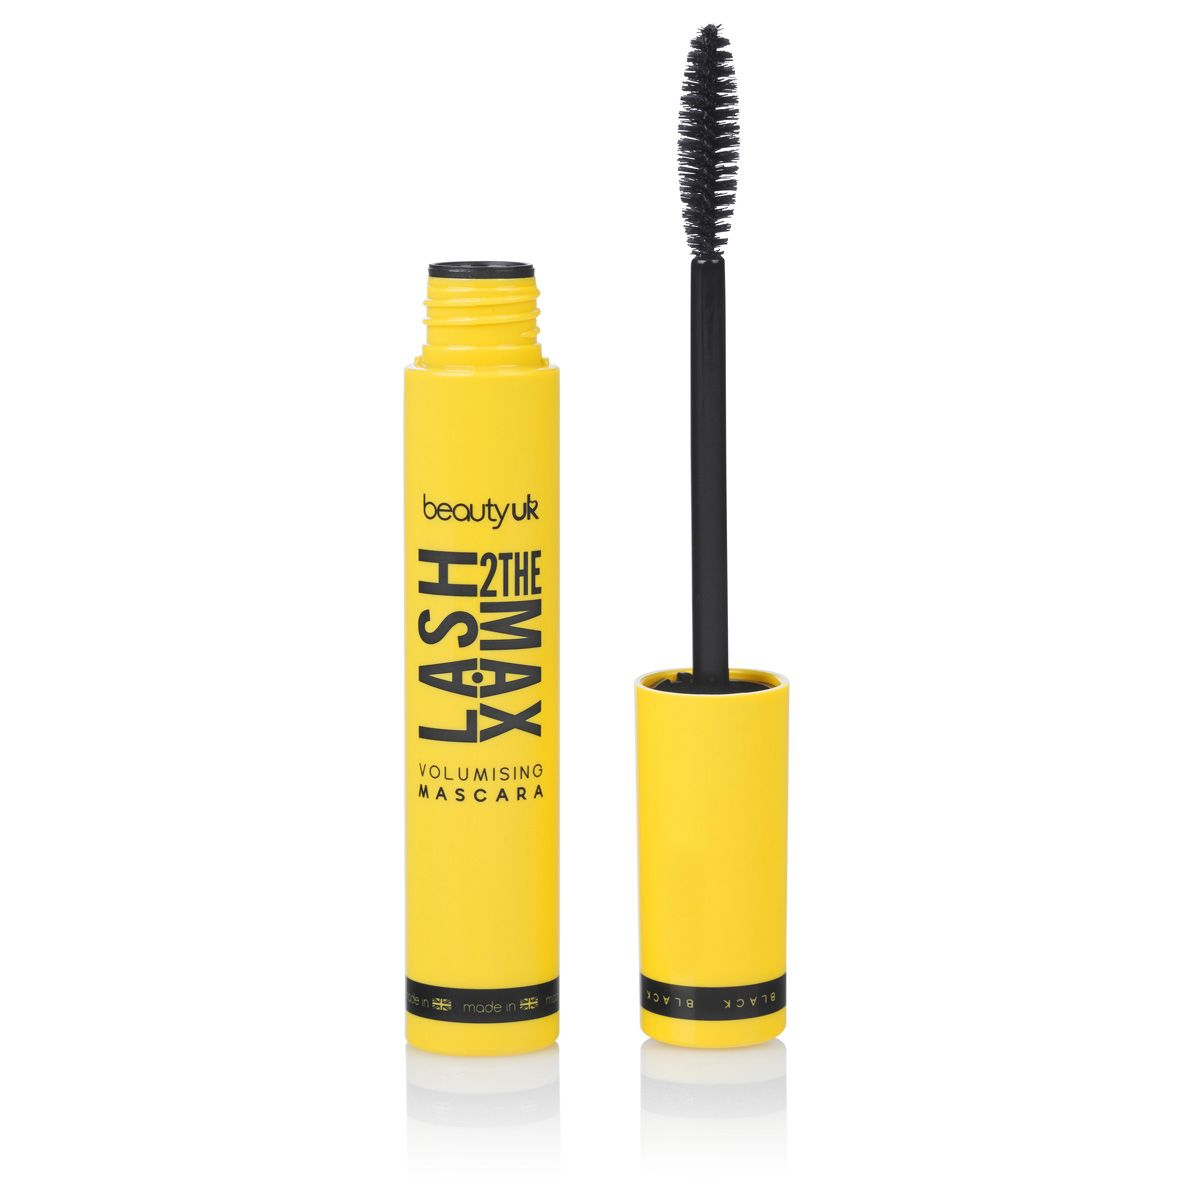 Lash 2 The Max Mascara